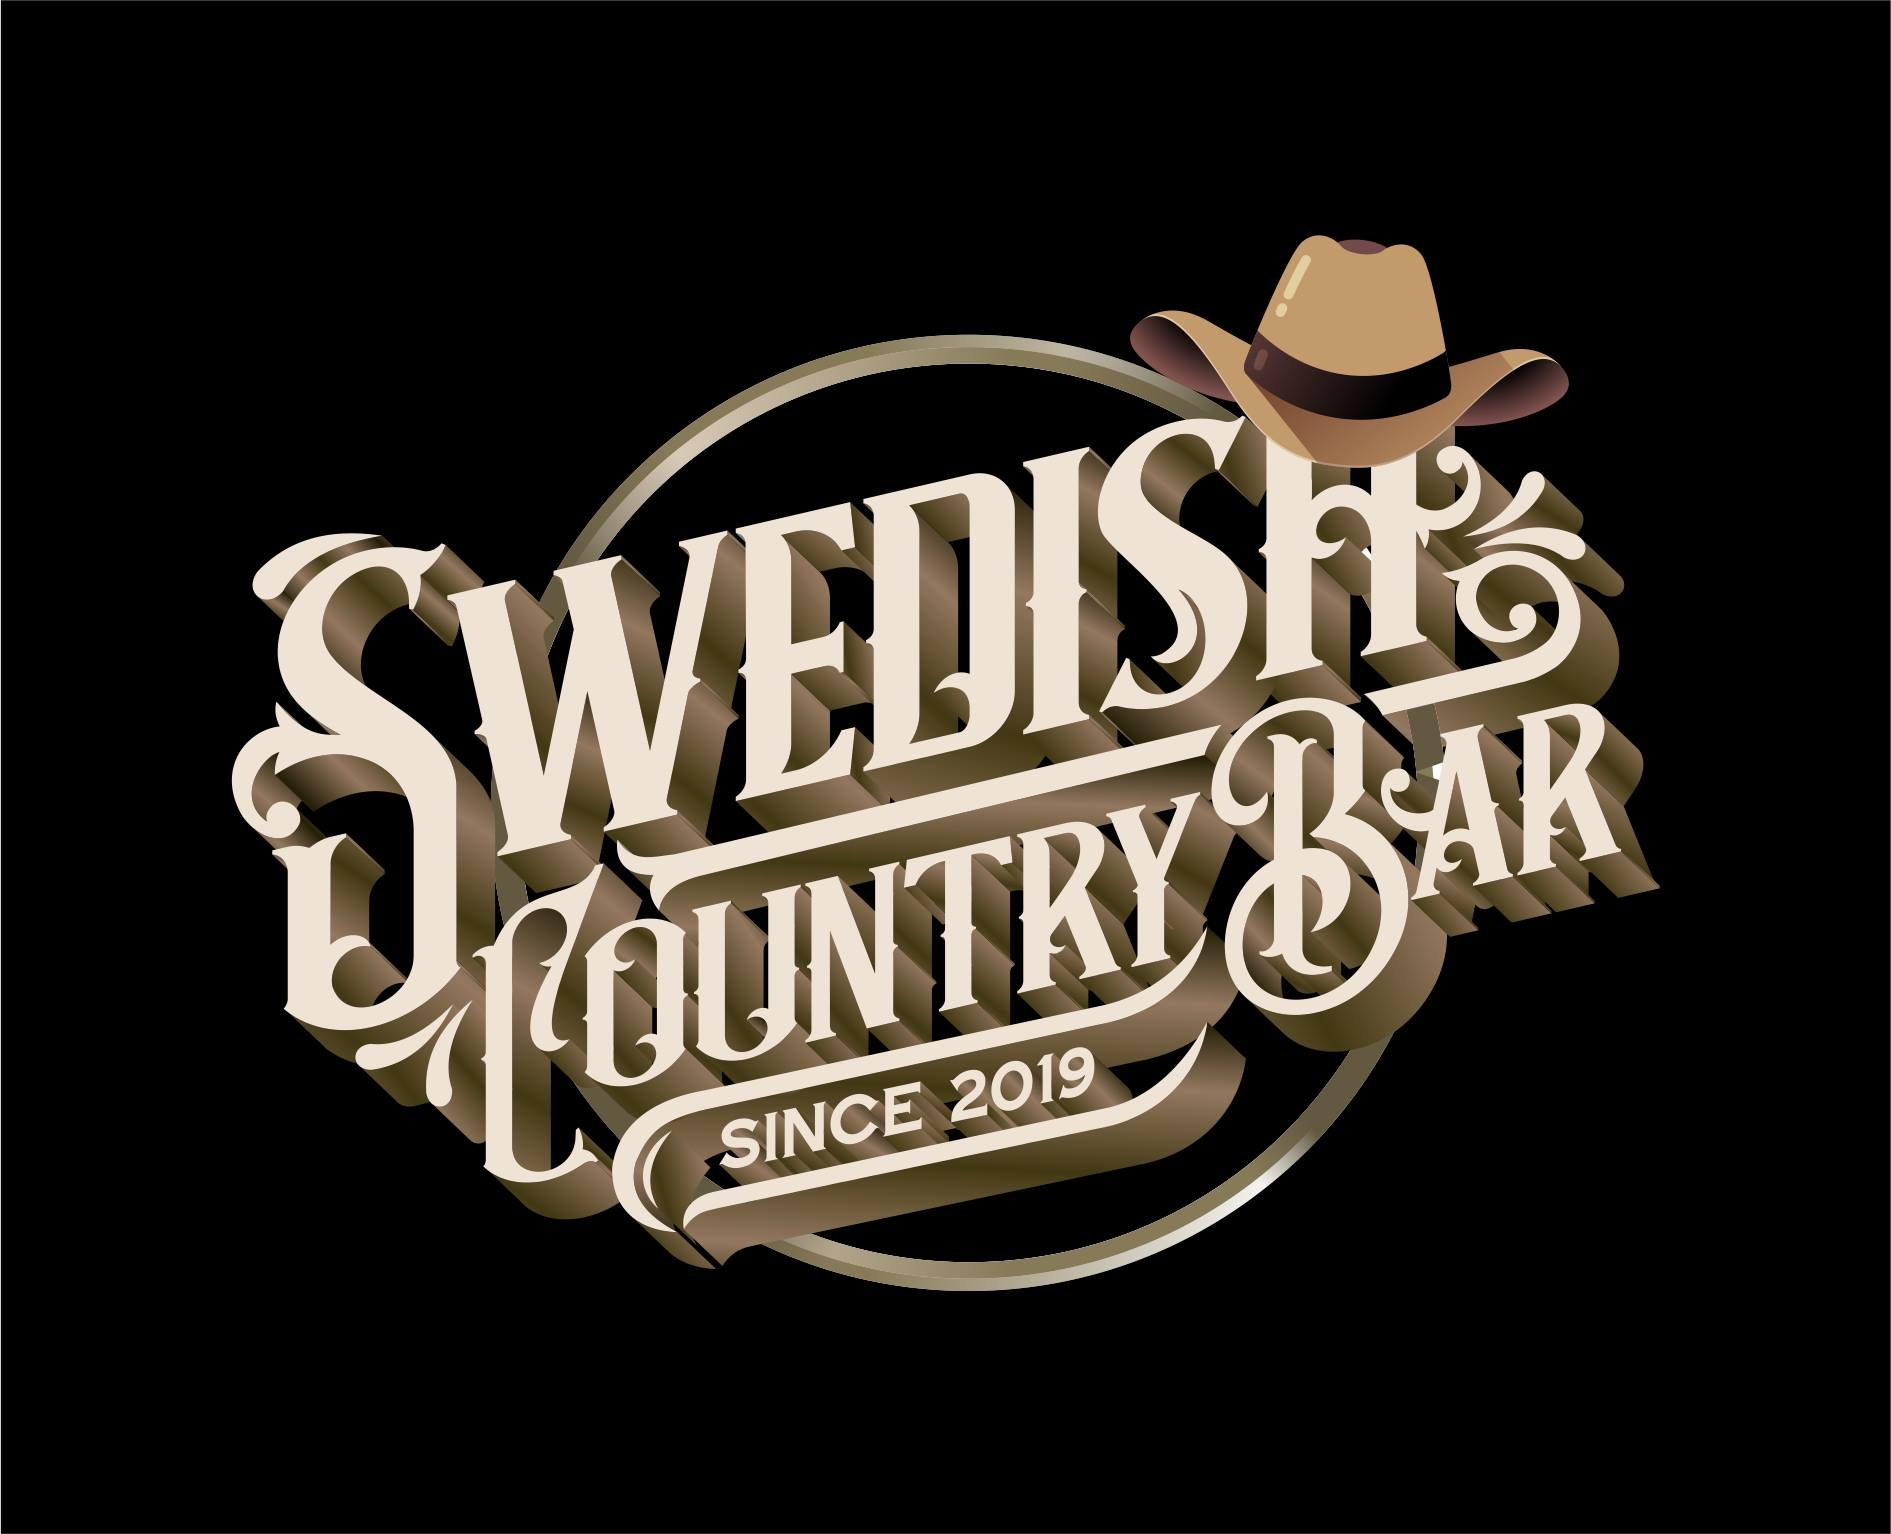 Swedish Country Bar